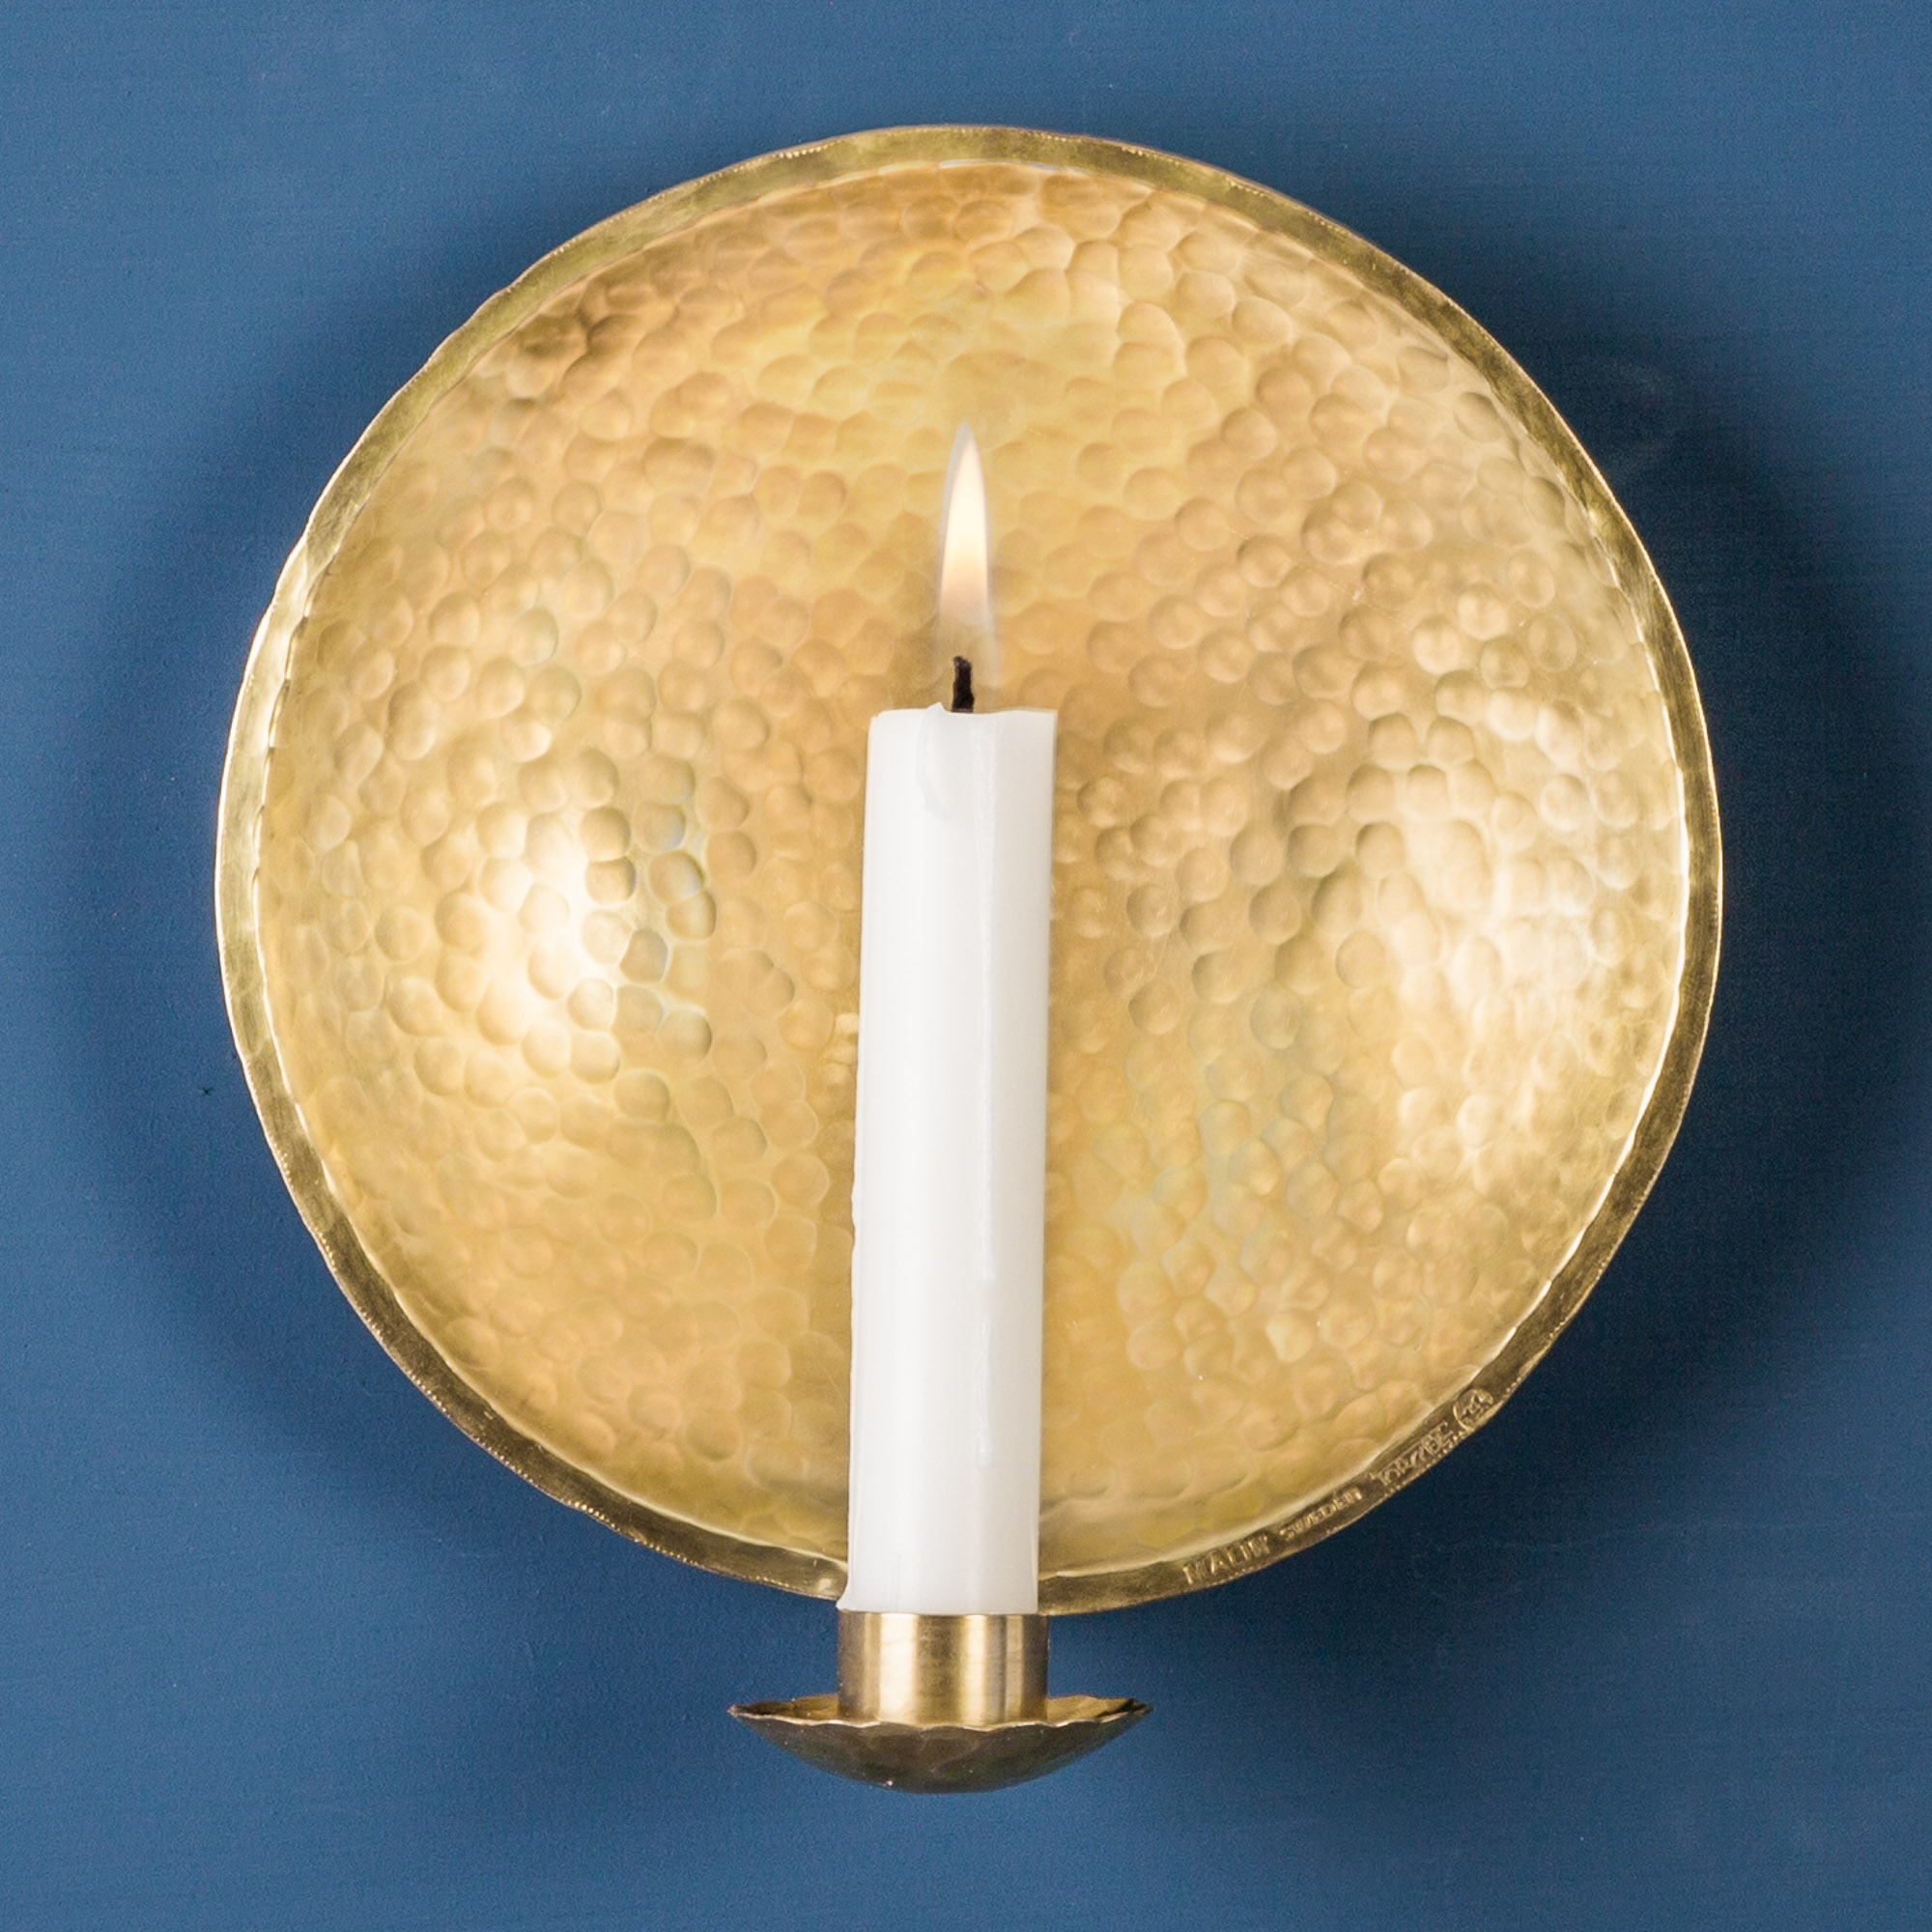 nursery-wallsconce-brass-malinappelgren